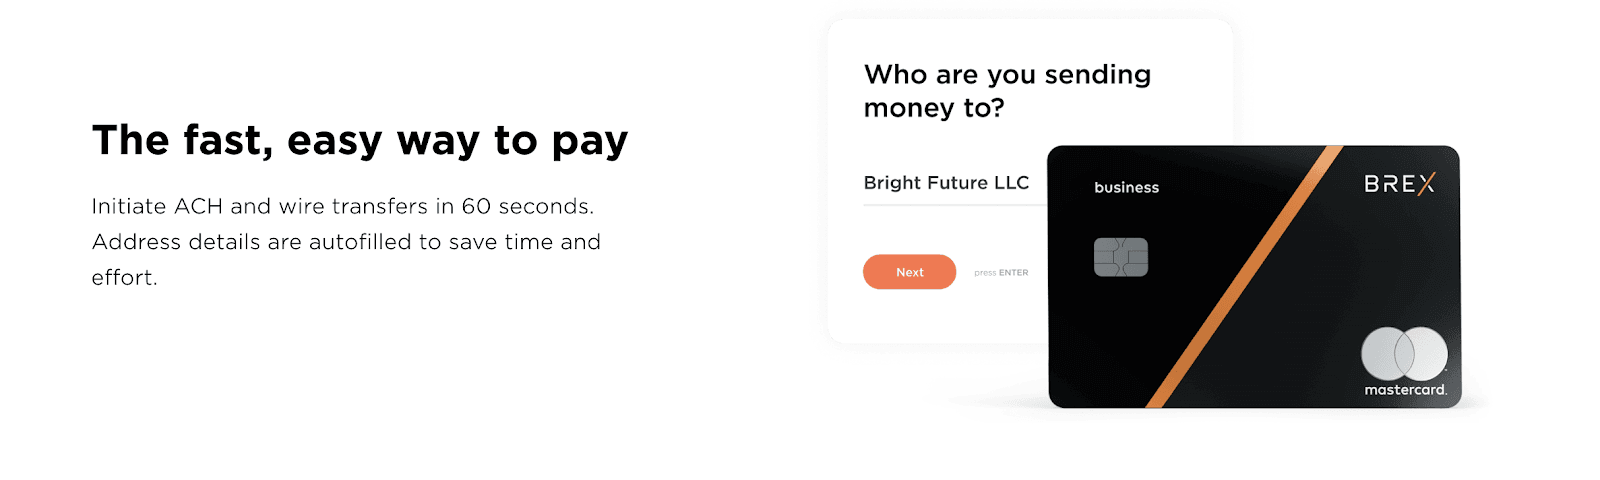 Brex Review: A Company That Makes Managing Your Startup A Breeze - Easy way to pay